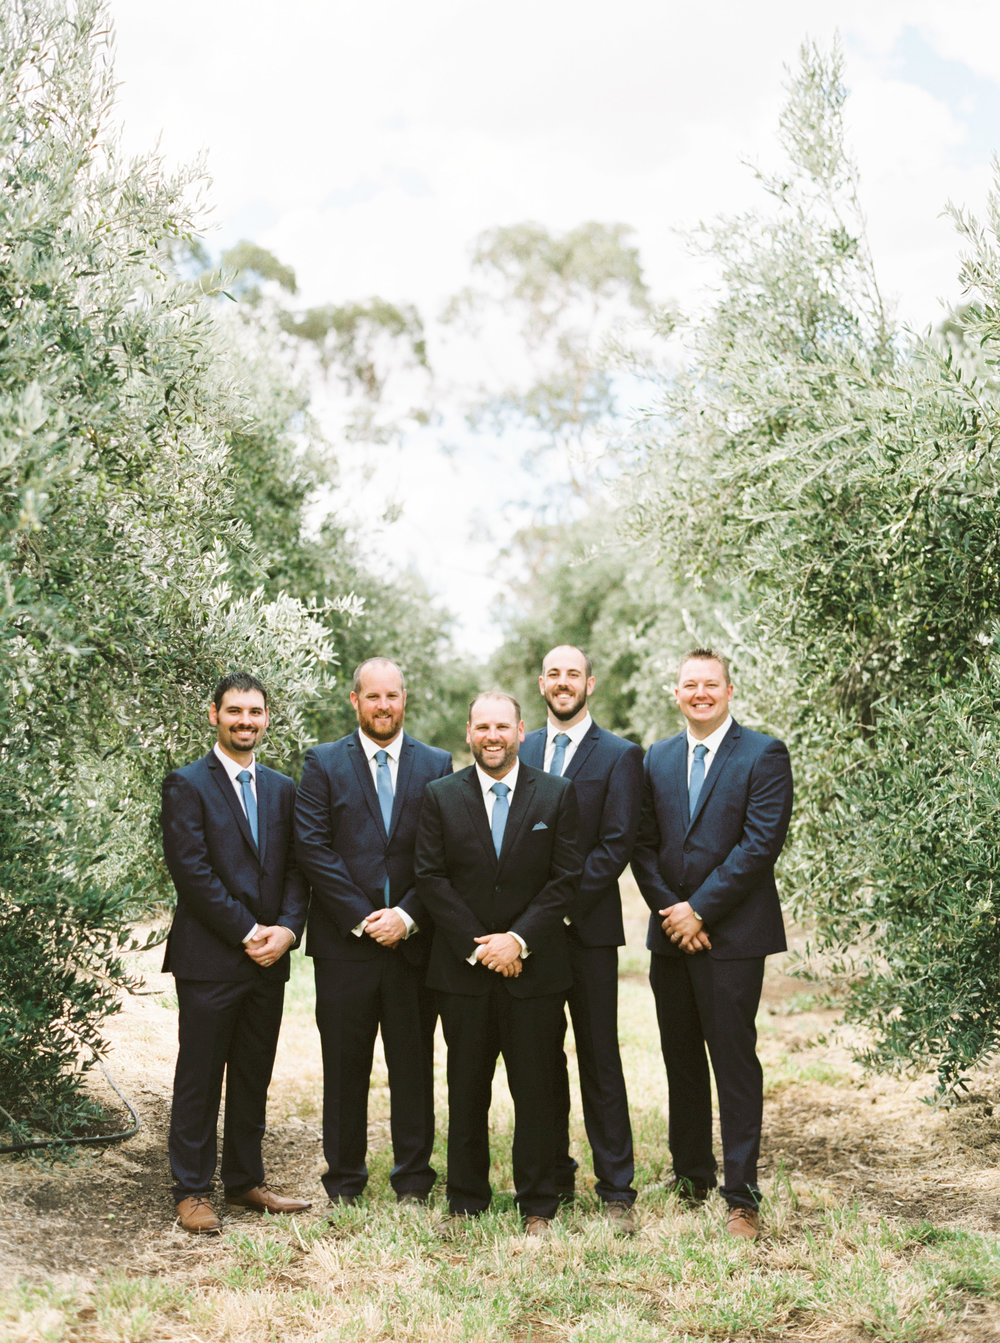 00029- Fine Art Film NSW Mudgee Wedding Photographer Sheri McMahon.jpg